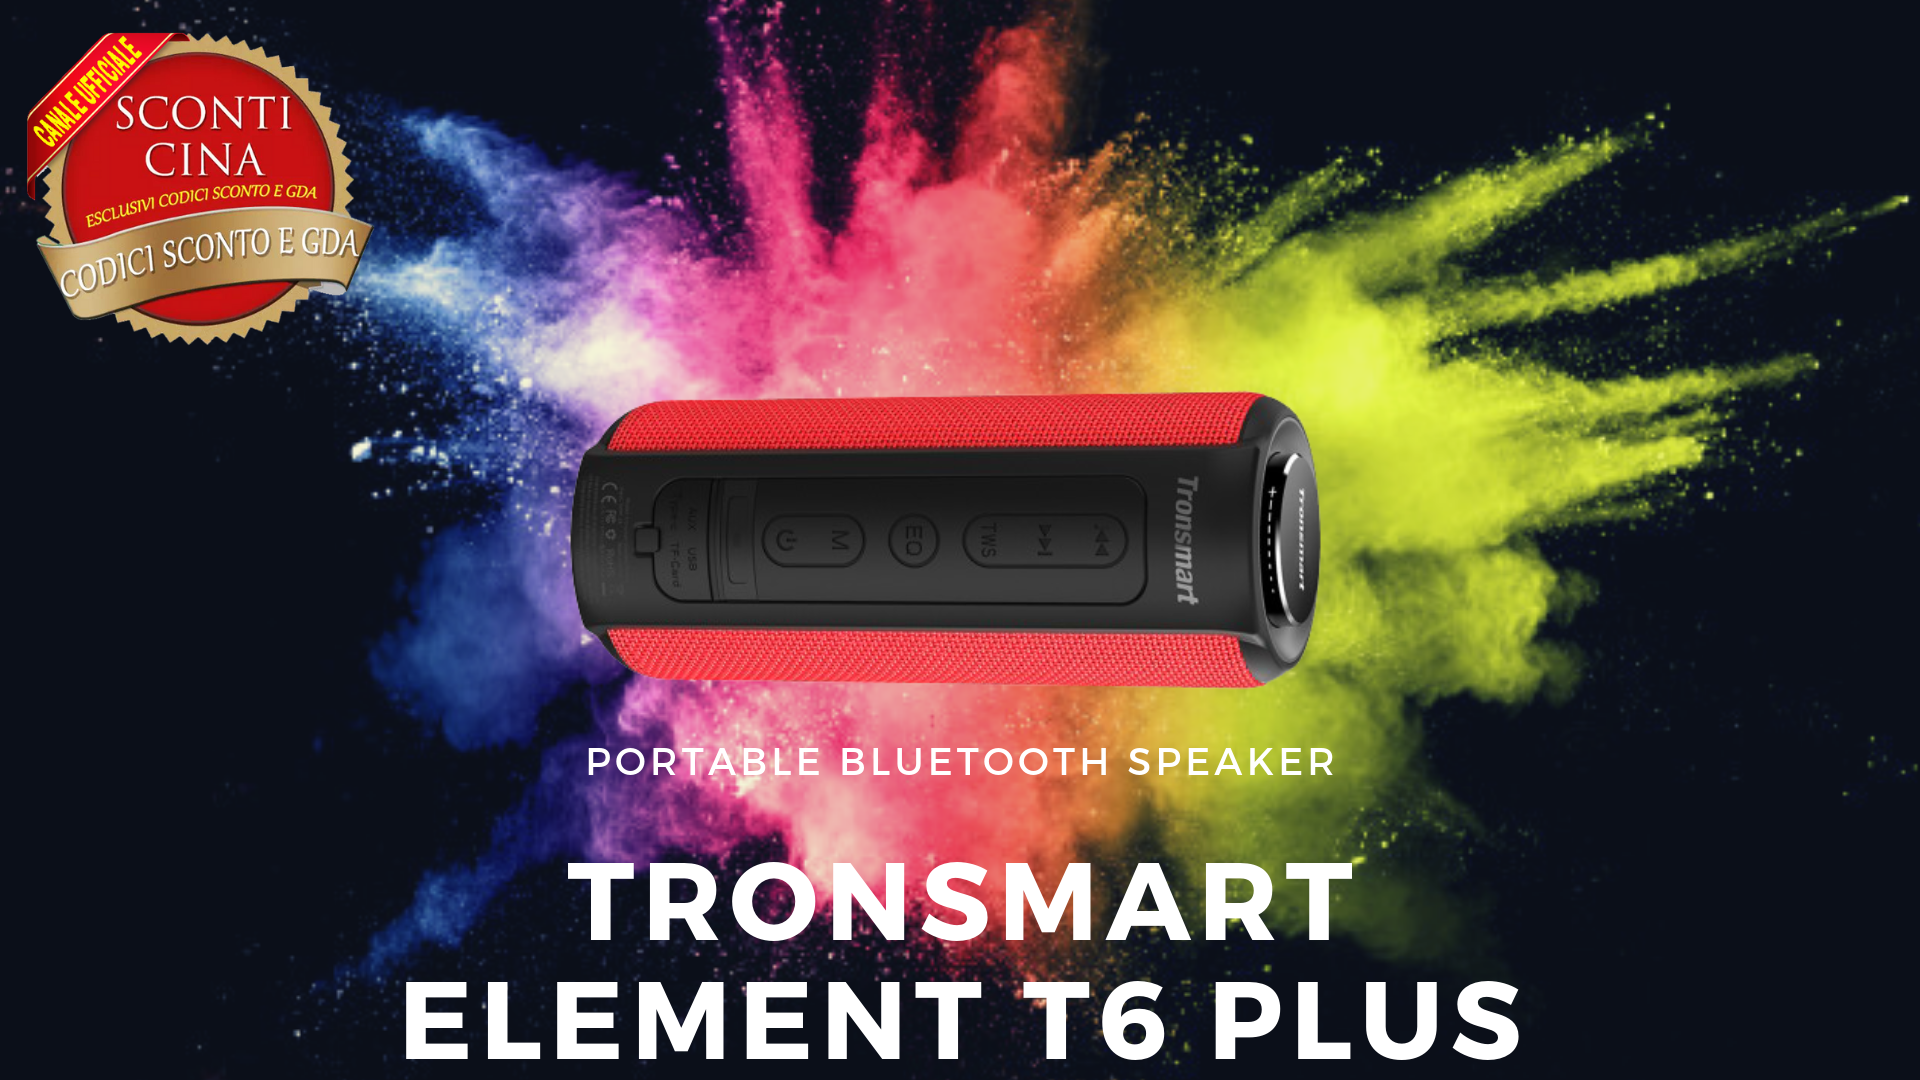 Tronsmart Element T6 Plus: la nuova generazione di altoparlanti bluetooth!